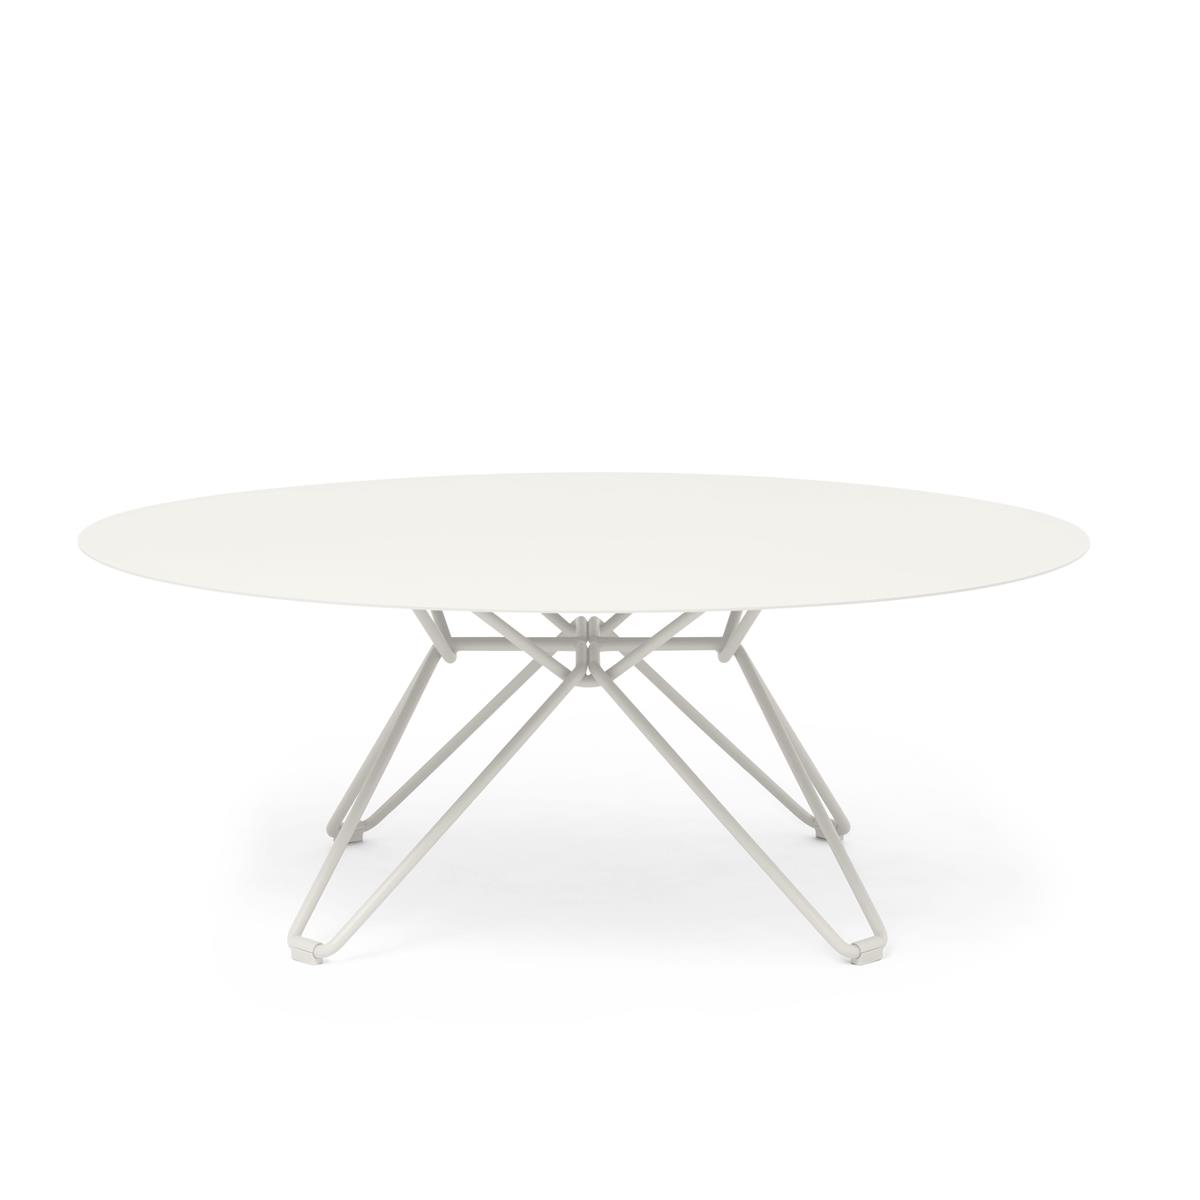 Tio Coffe Table Ø100 x H38 cm - White